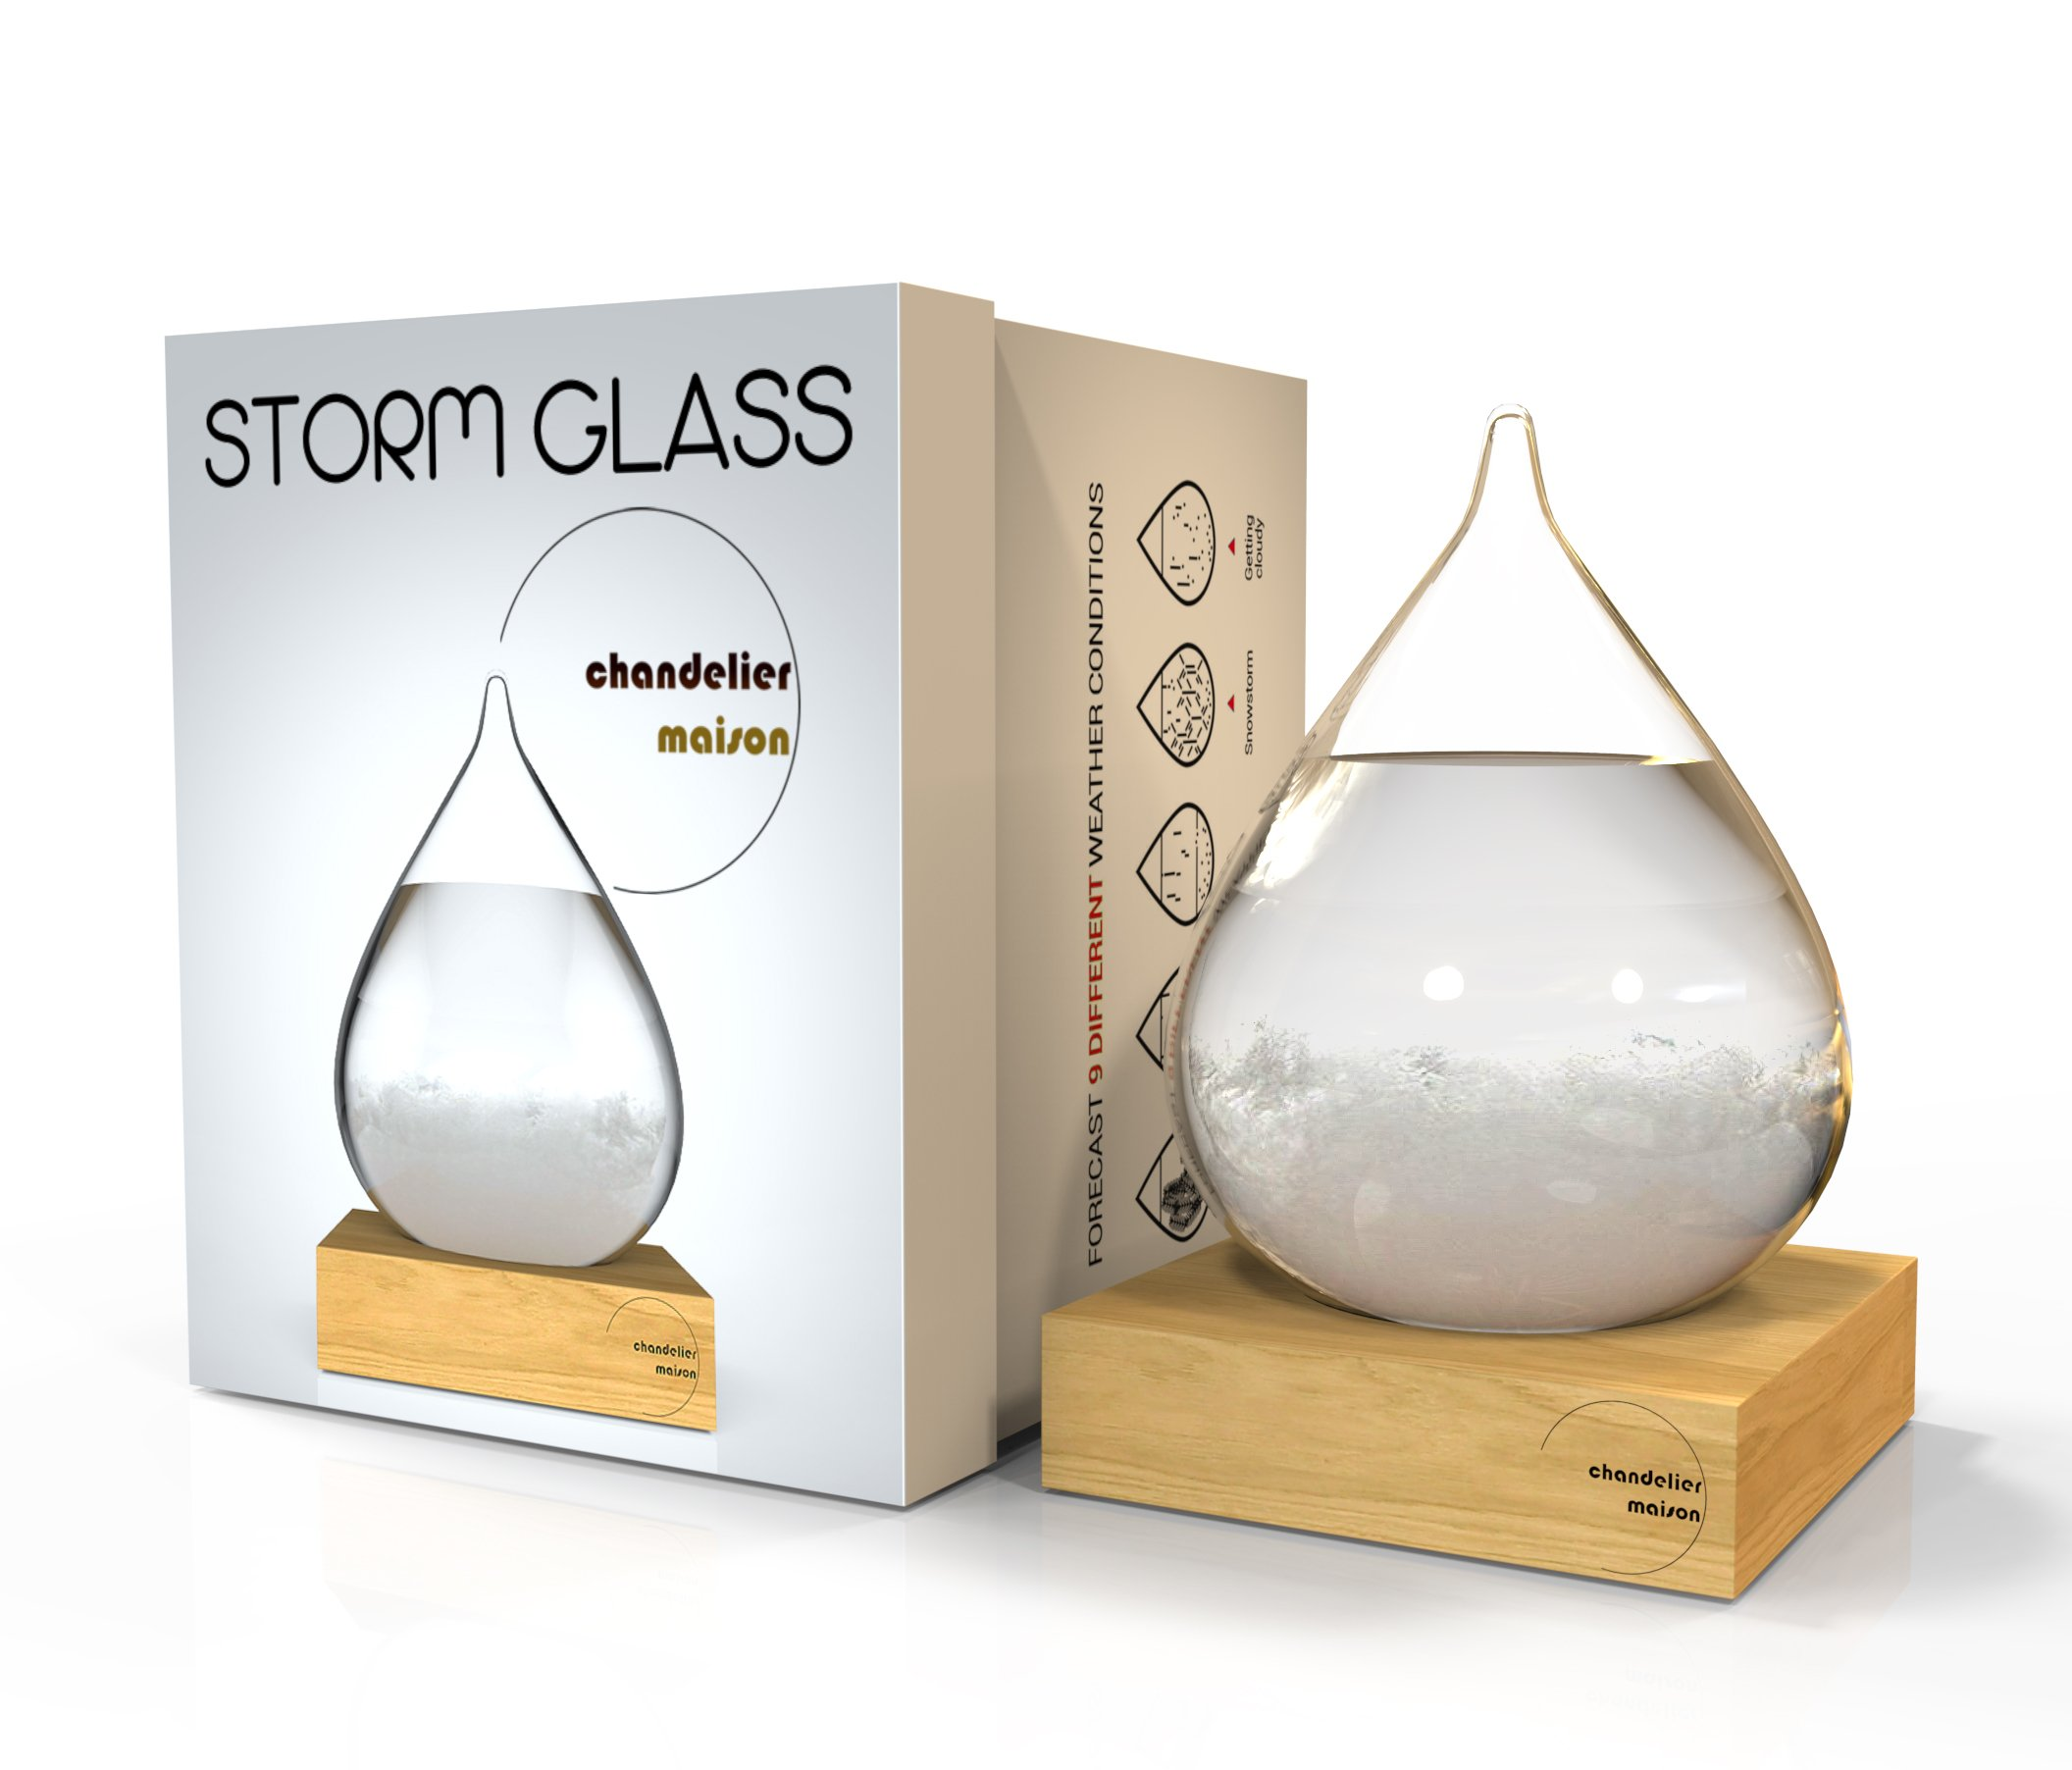 Chandelier Maison Storm Glass for Home & Office Decoration, EU Weather Forecaster with glass water drop shaped and wood display